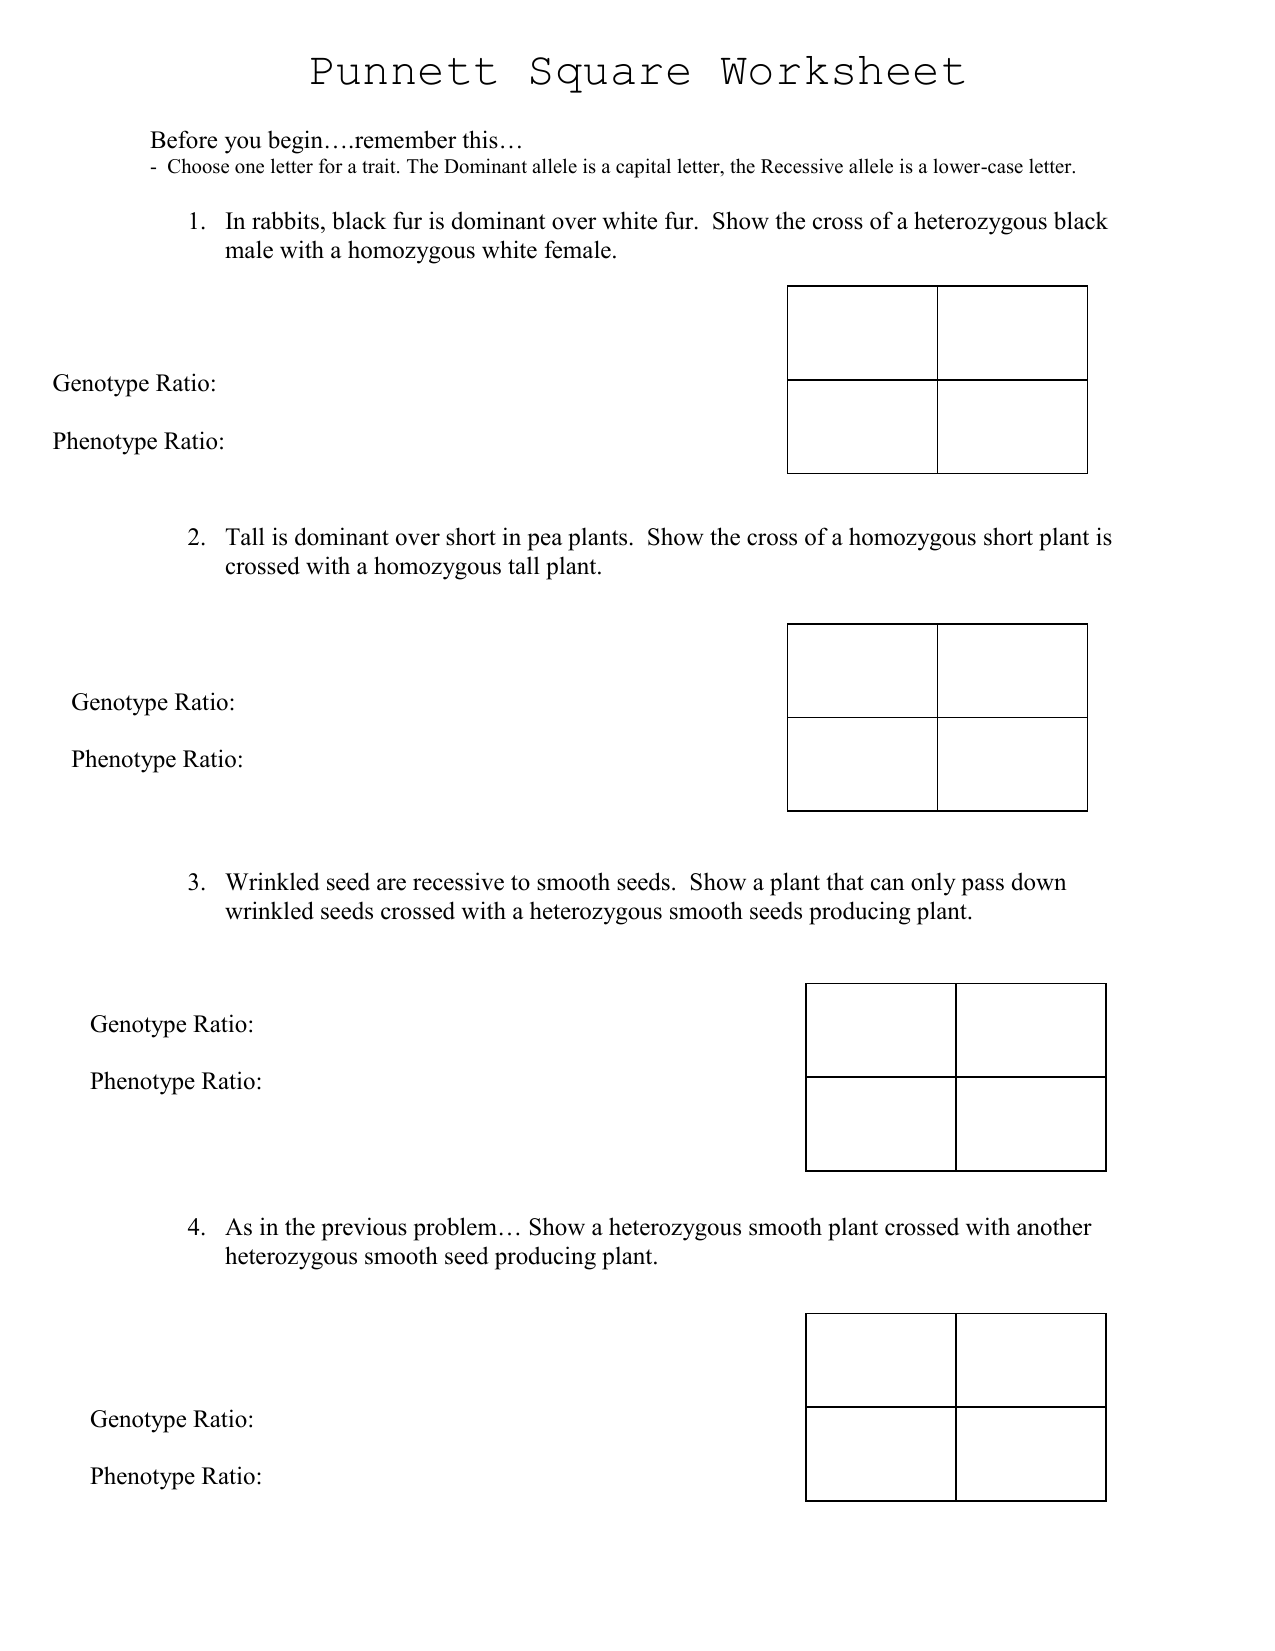 Punnett Square Worksheet 1 Answers